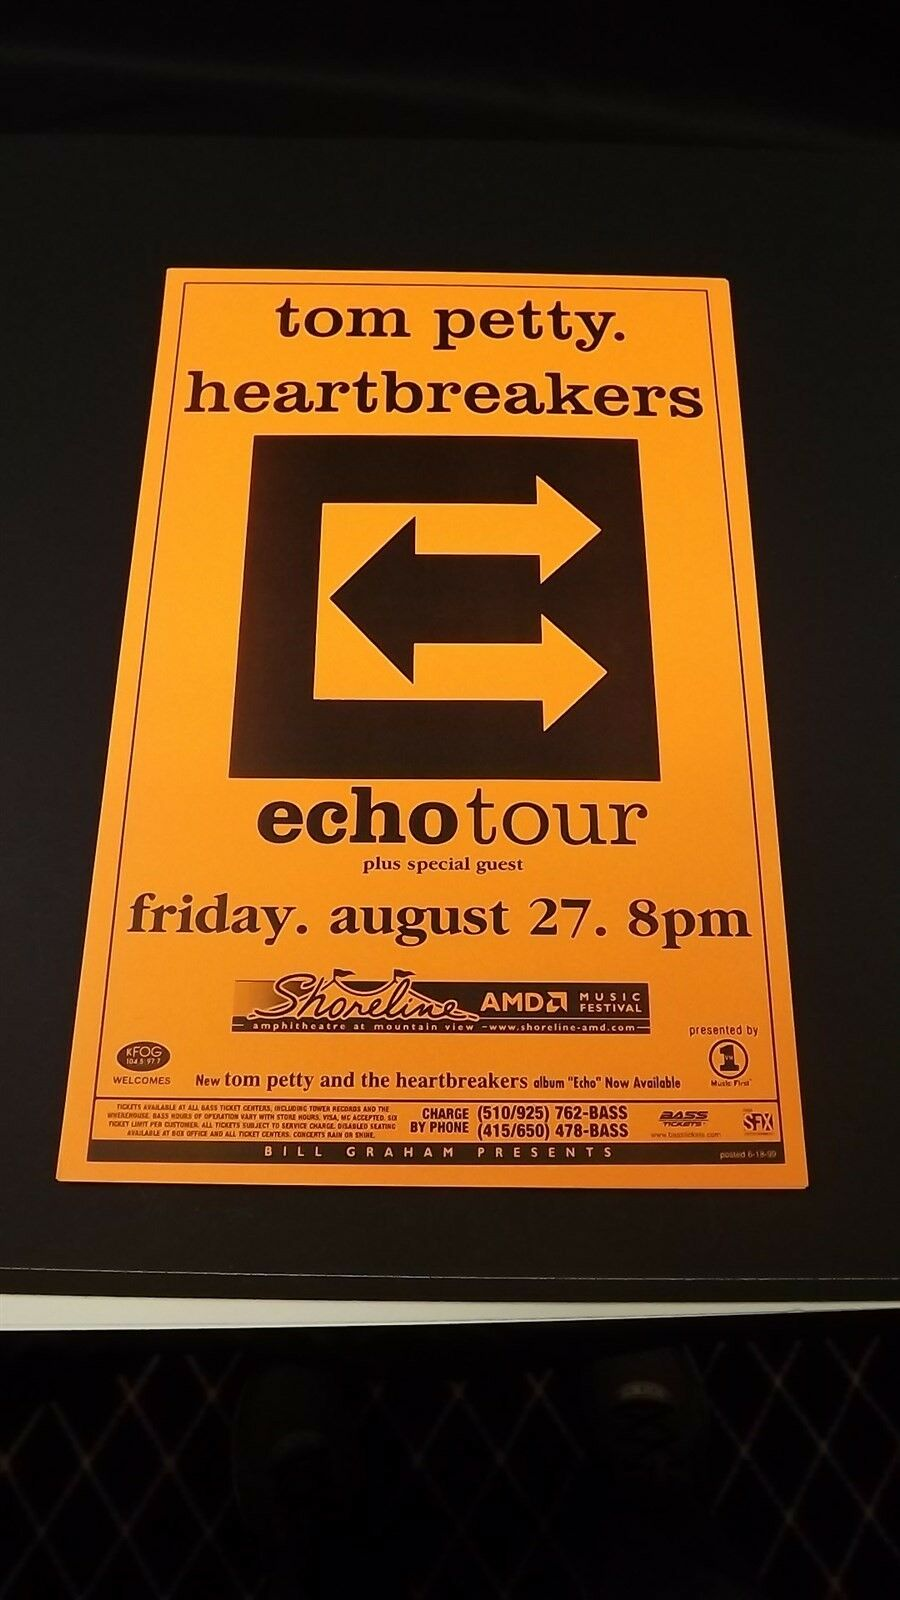 Genuine 1999 TOM PETTY & THE HEARTBREAKERS Echo Tour Concert Poster Flyer Ad 1